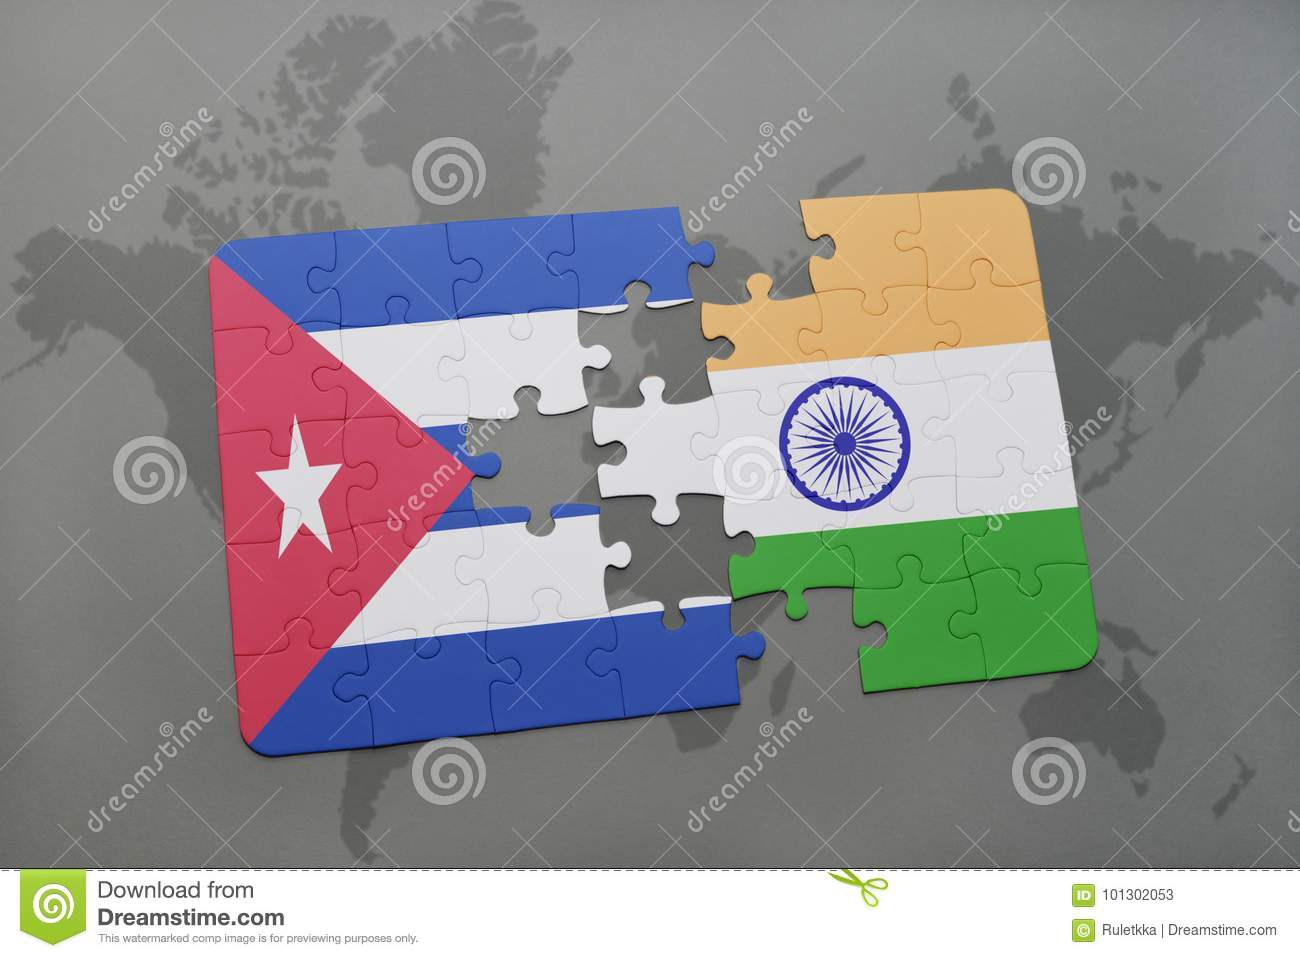 Puzzle with the national flag of cuba and india on a world map download puzzle with the national flag of cuba and india on a world map background gumiabroncs